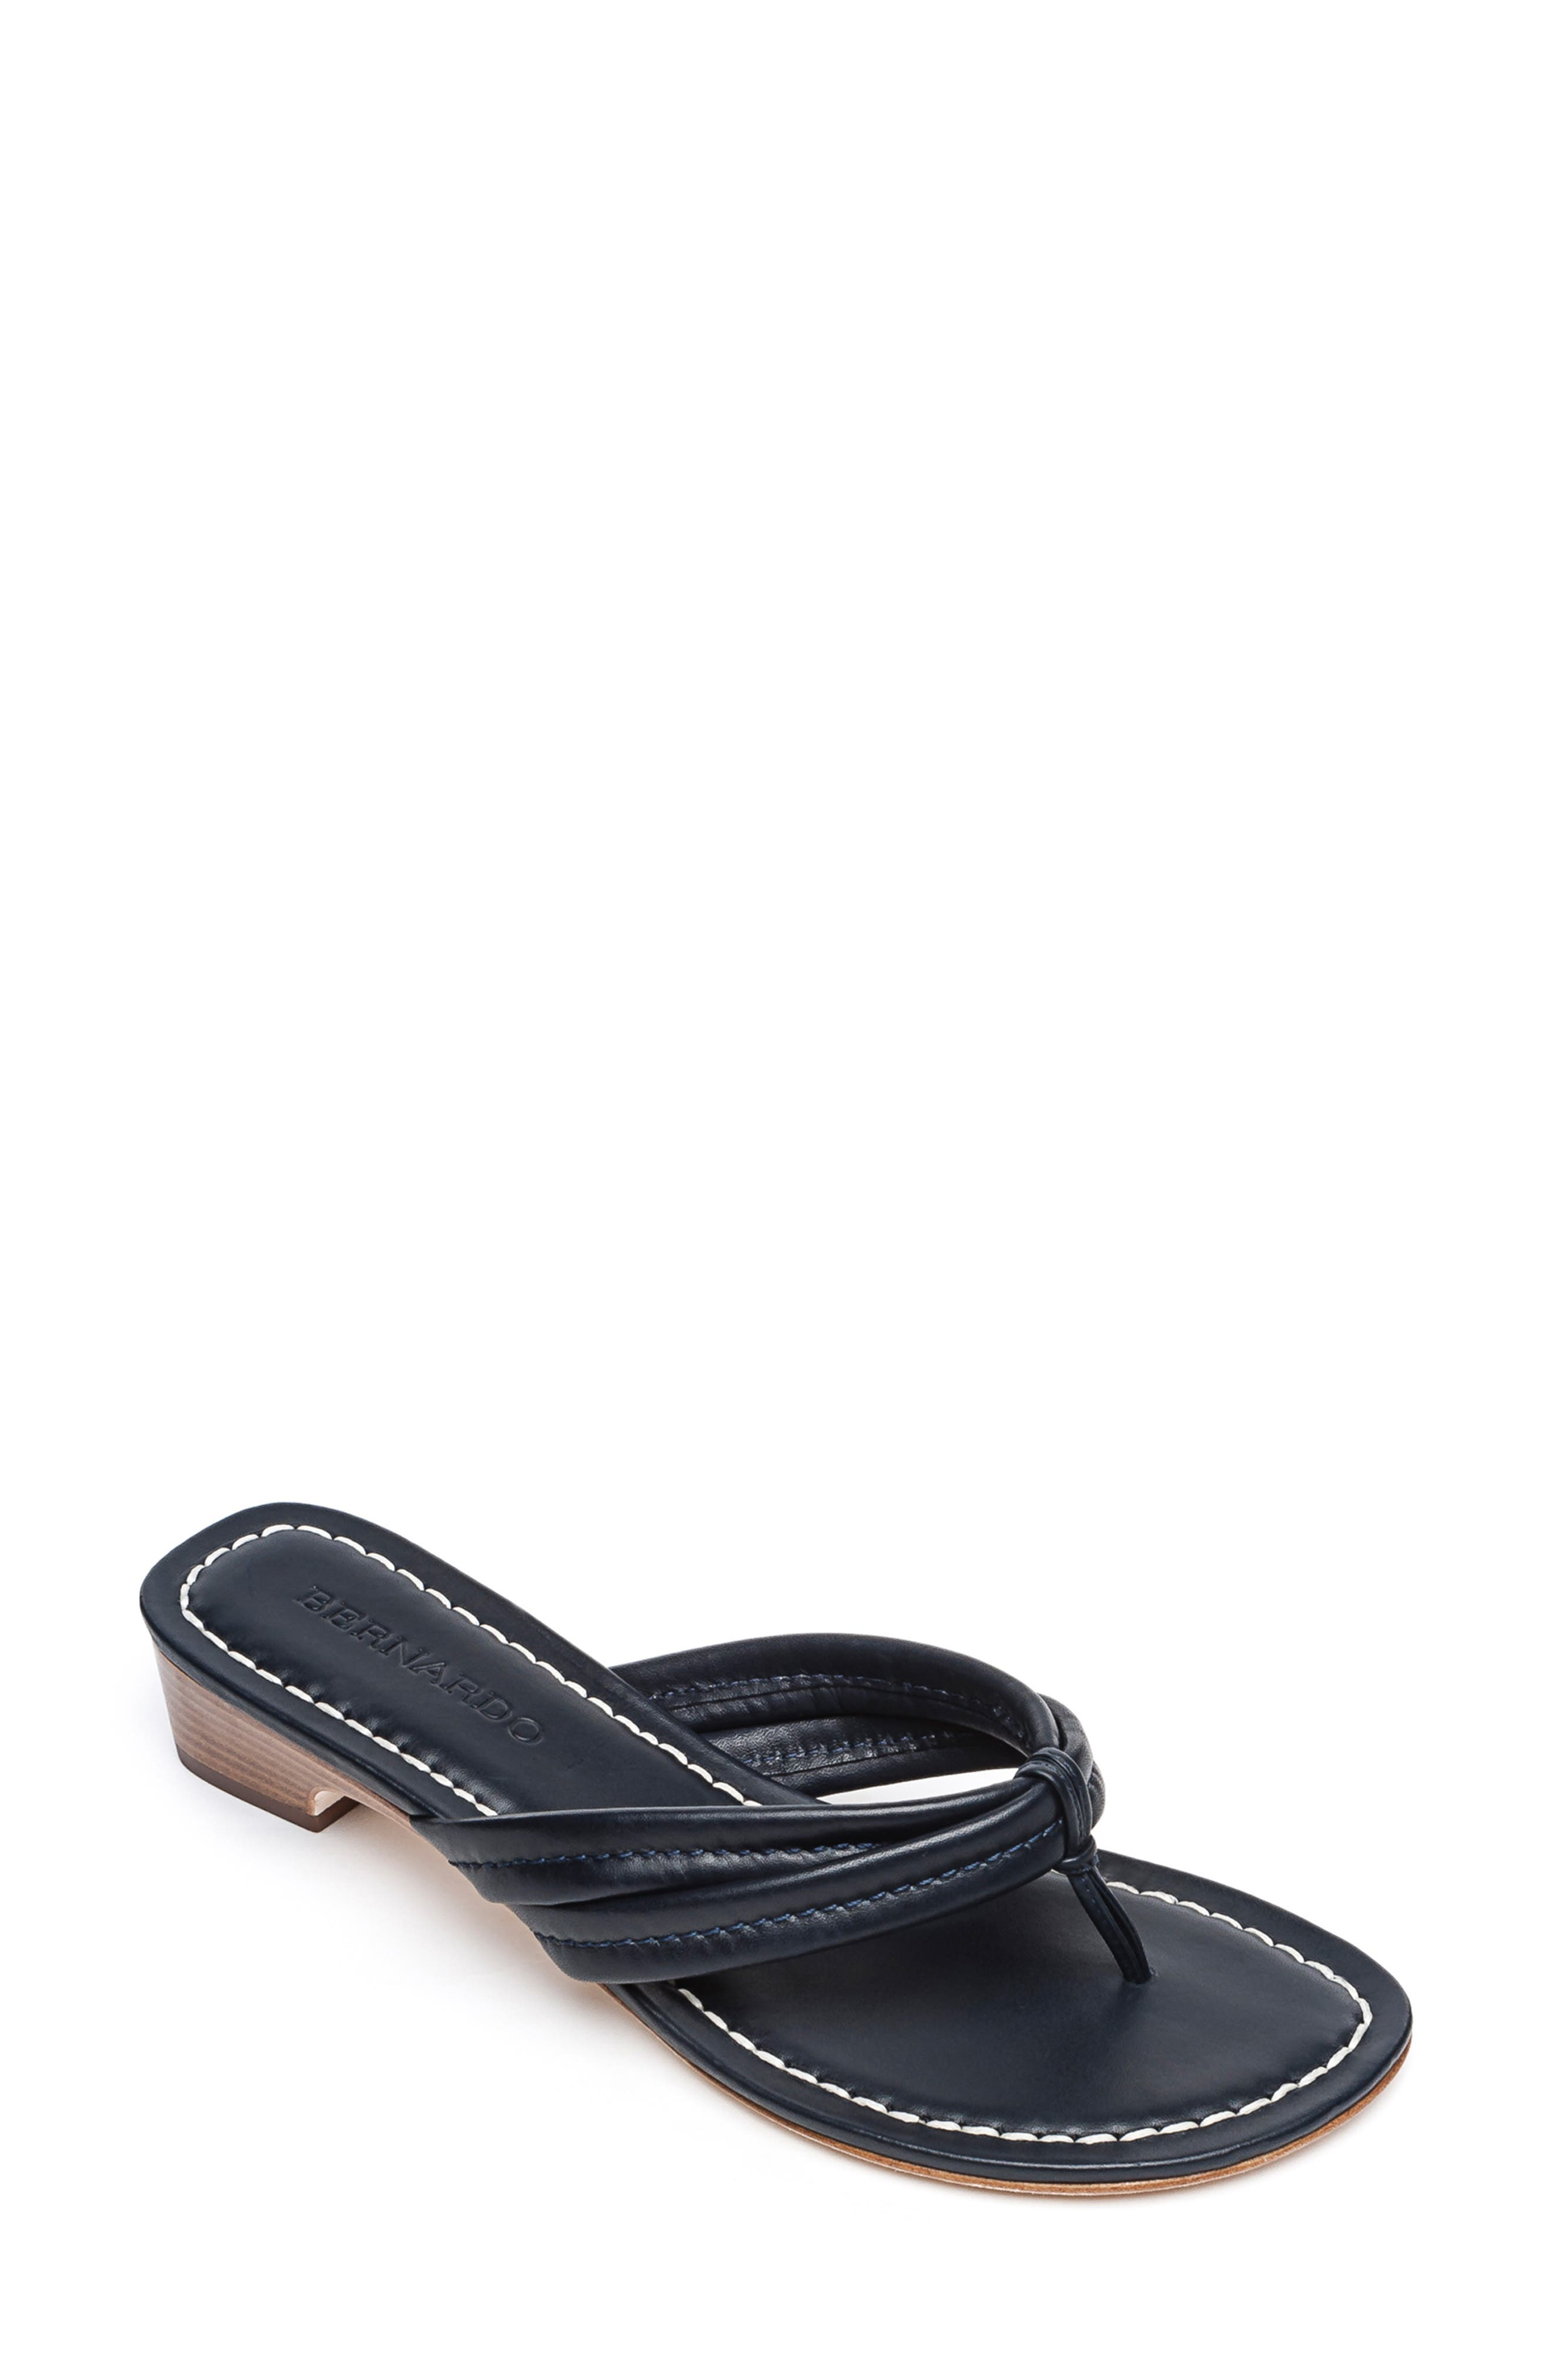 BERNARDO Miami Sandal, Main, color, BLACK ANTIQUE LEATHER